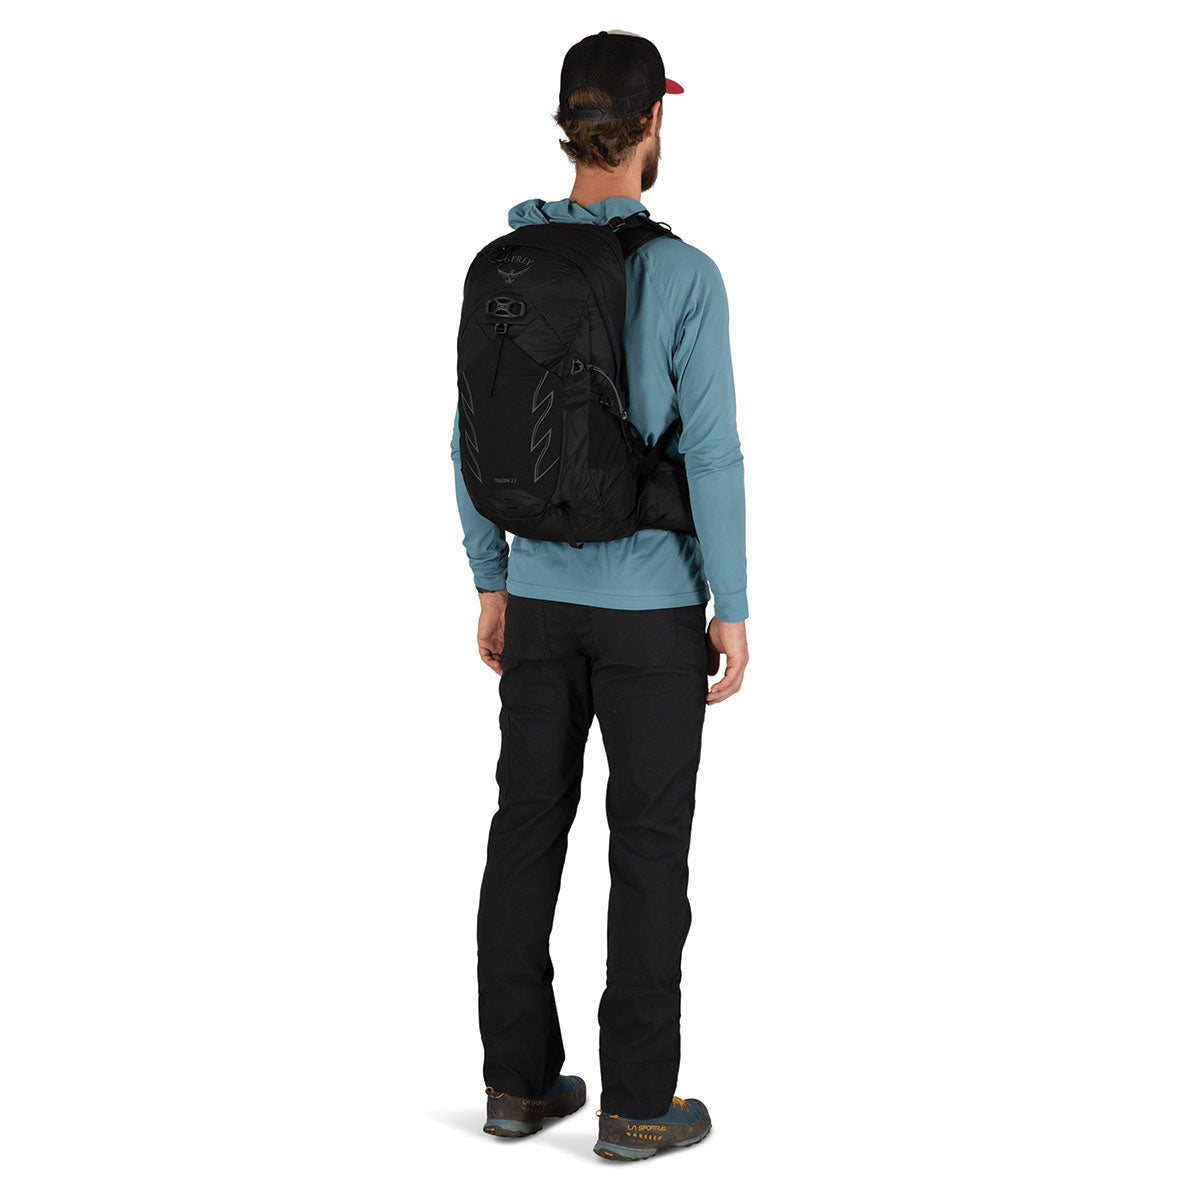 Osprey Talon 22 Pack